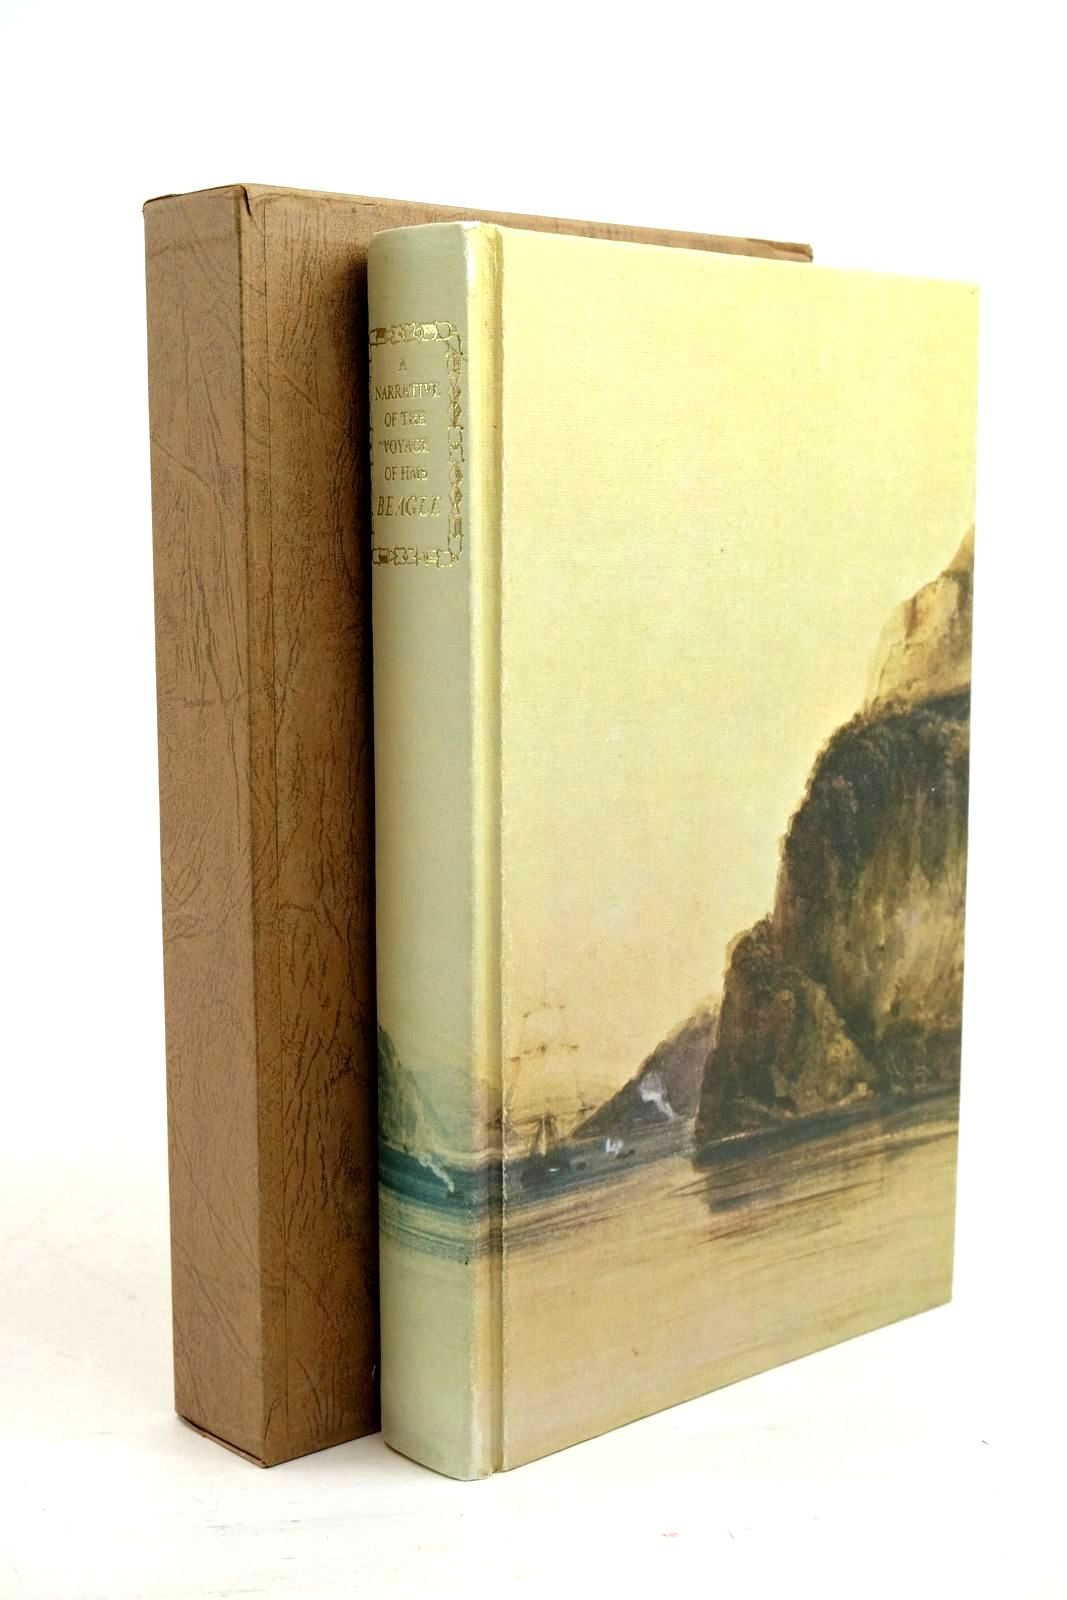 Photo of A NARRATIVE OF THE VOYAGE OF H.M.S. BEAGLE written by FitzRoy, Robert Stanbury, David published by Folio Society (STOCK CODE: 1321269)  for sale by Stella & Rose's Books